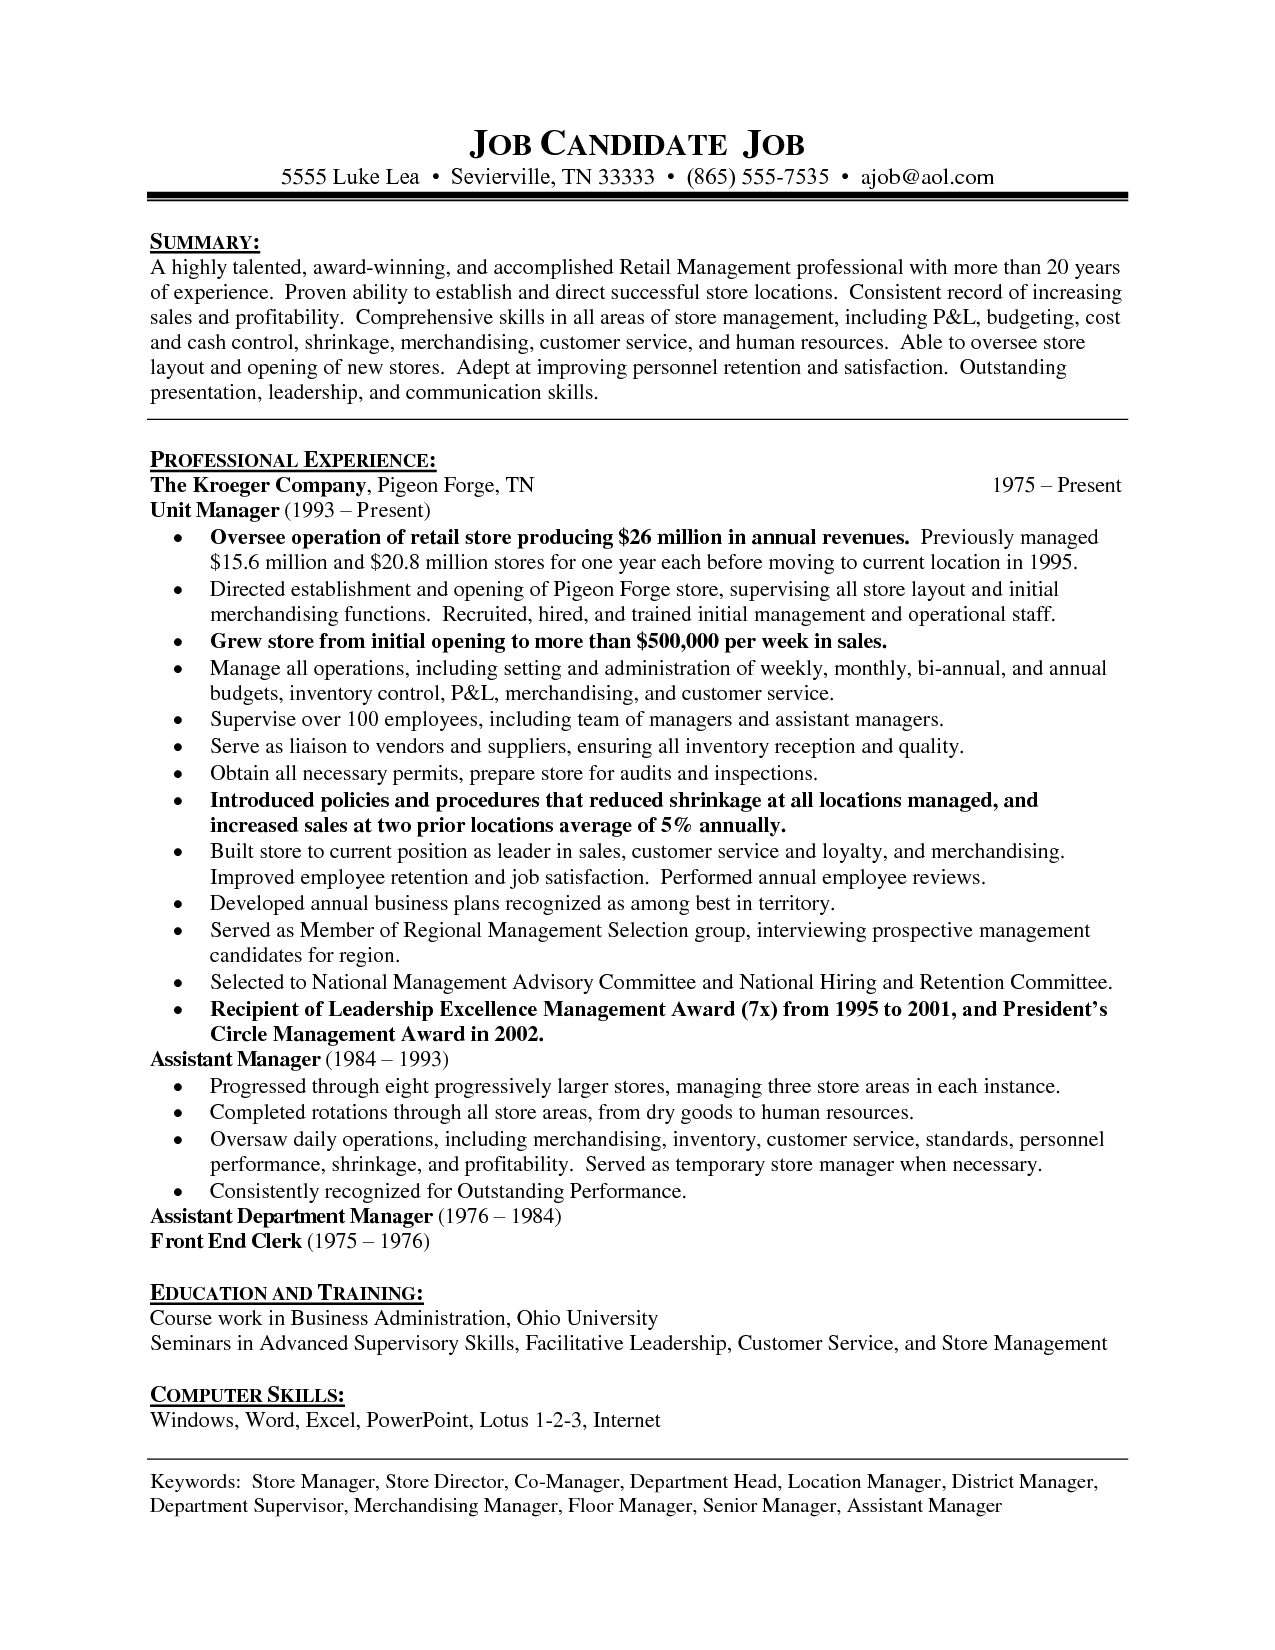 Grocery Store Resume Retail Department Store Manager Resume  Vision Specialist  Good .